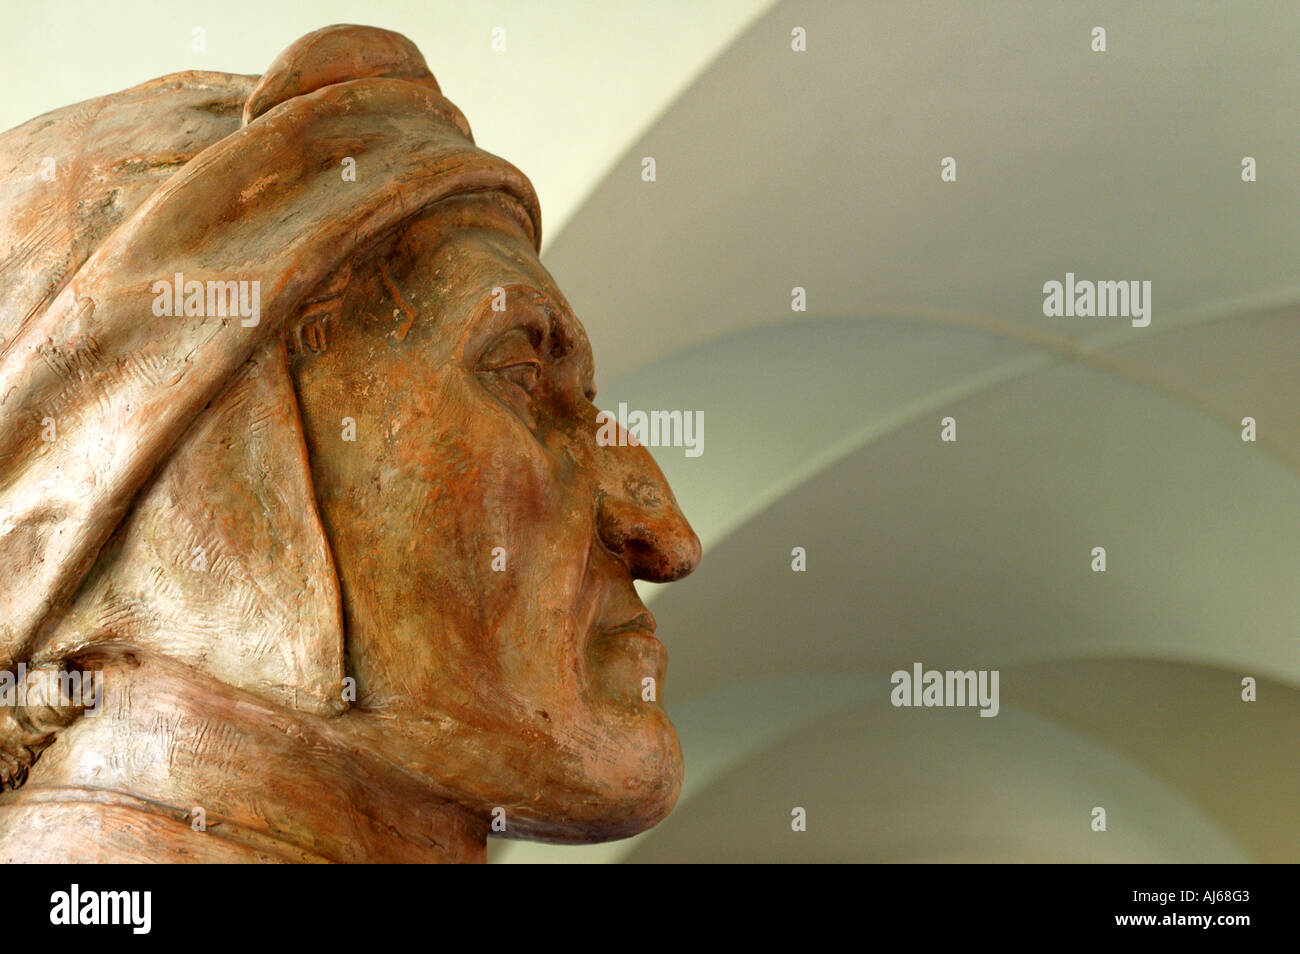 A bust of Italian poet Dante Alighieri in the cloister of the Museo Dantesco in Ravenna Emilia Romagna Italy - Stock Image